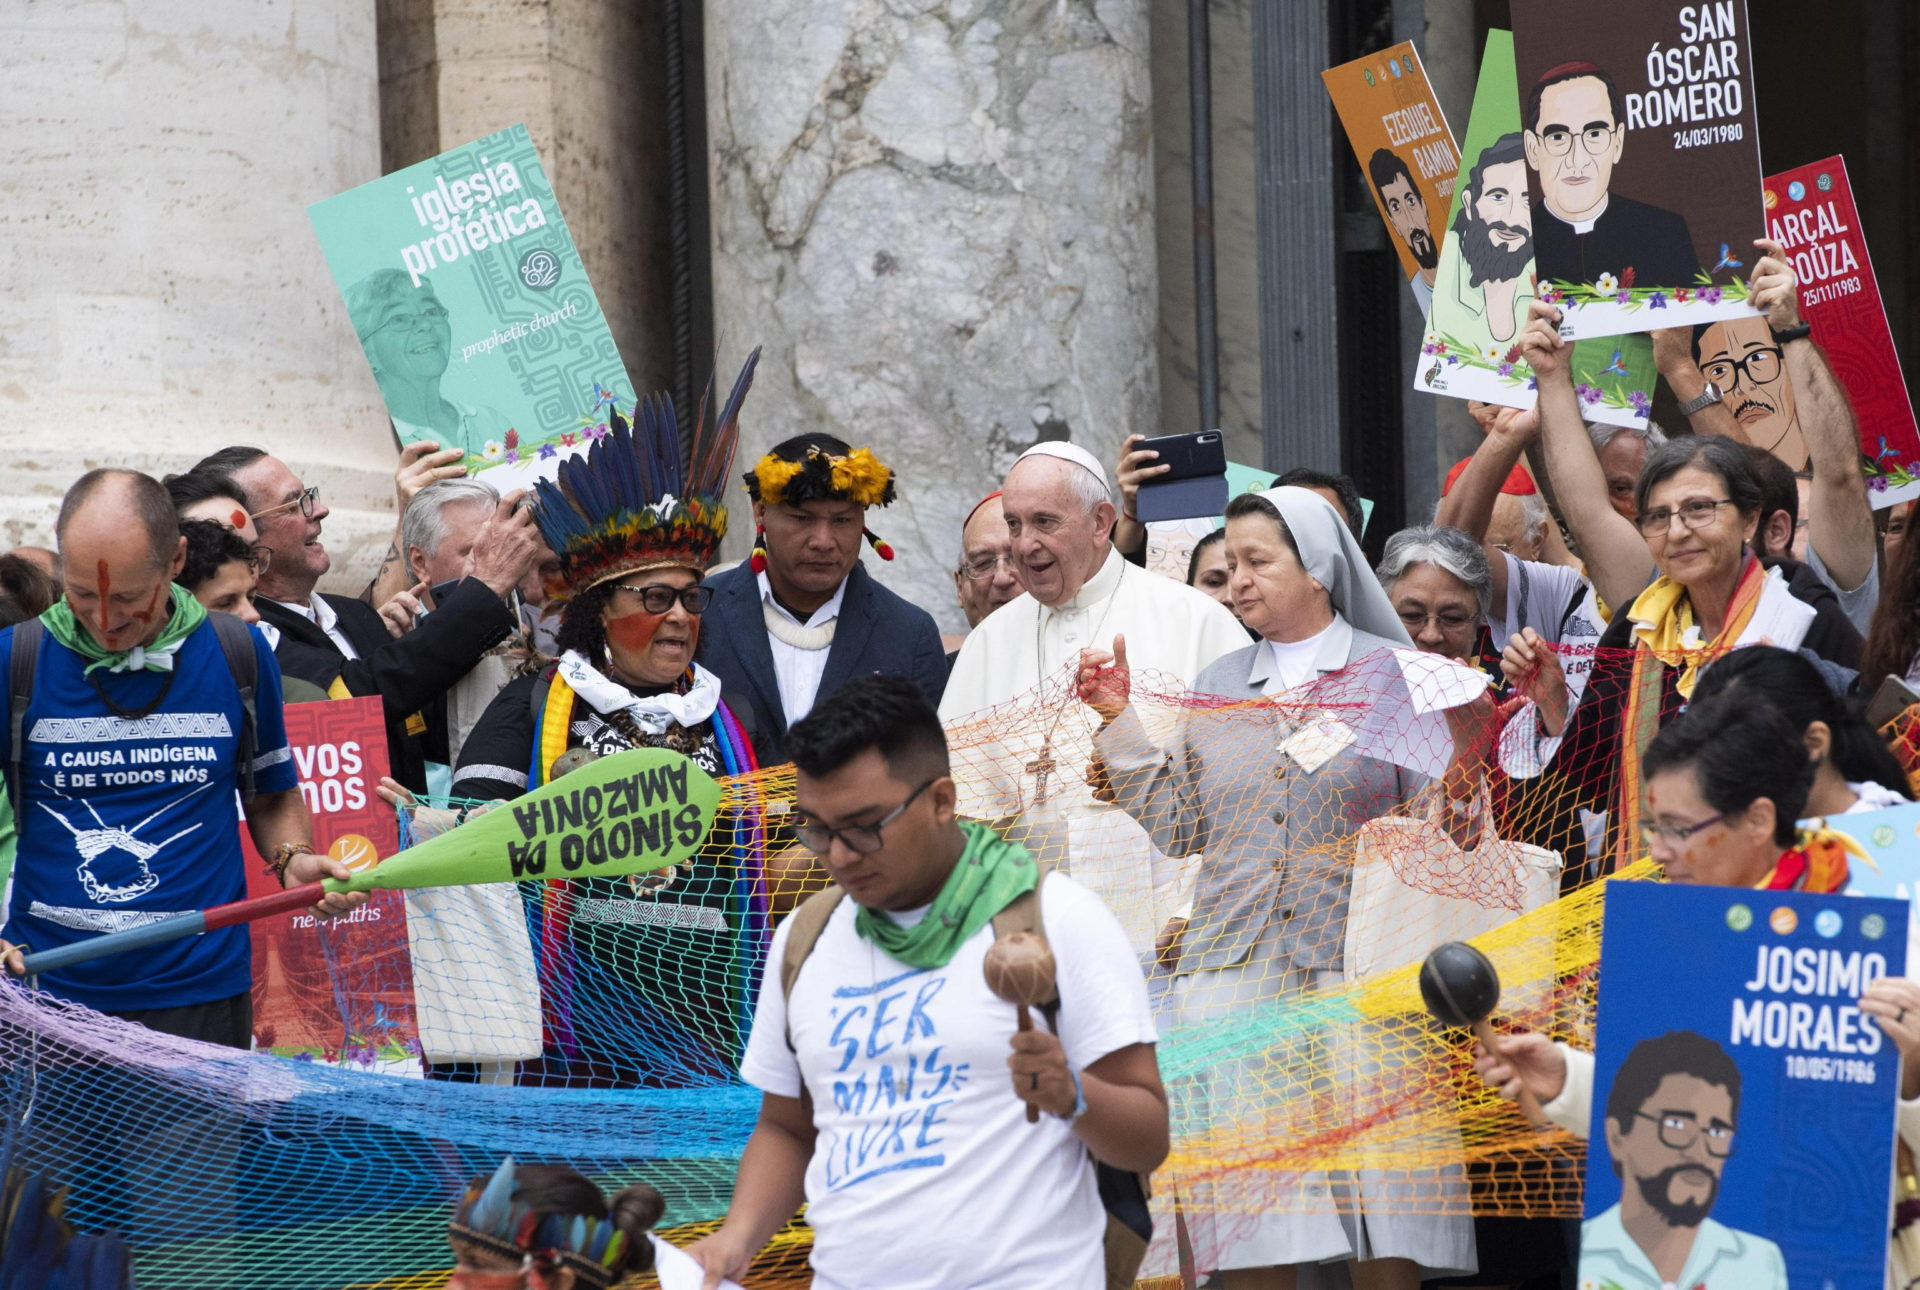 Pope Francis Amazon synod at the Vatican